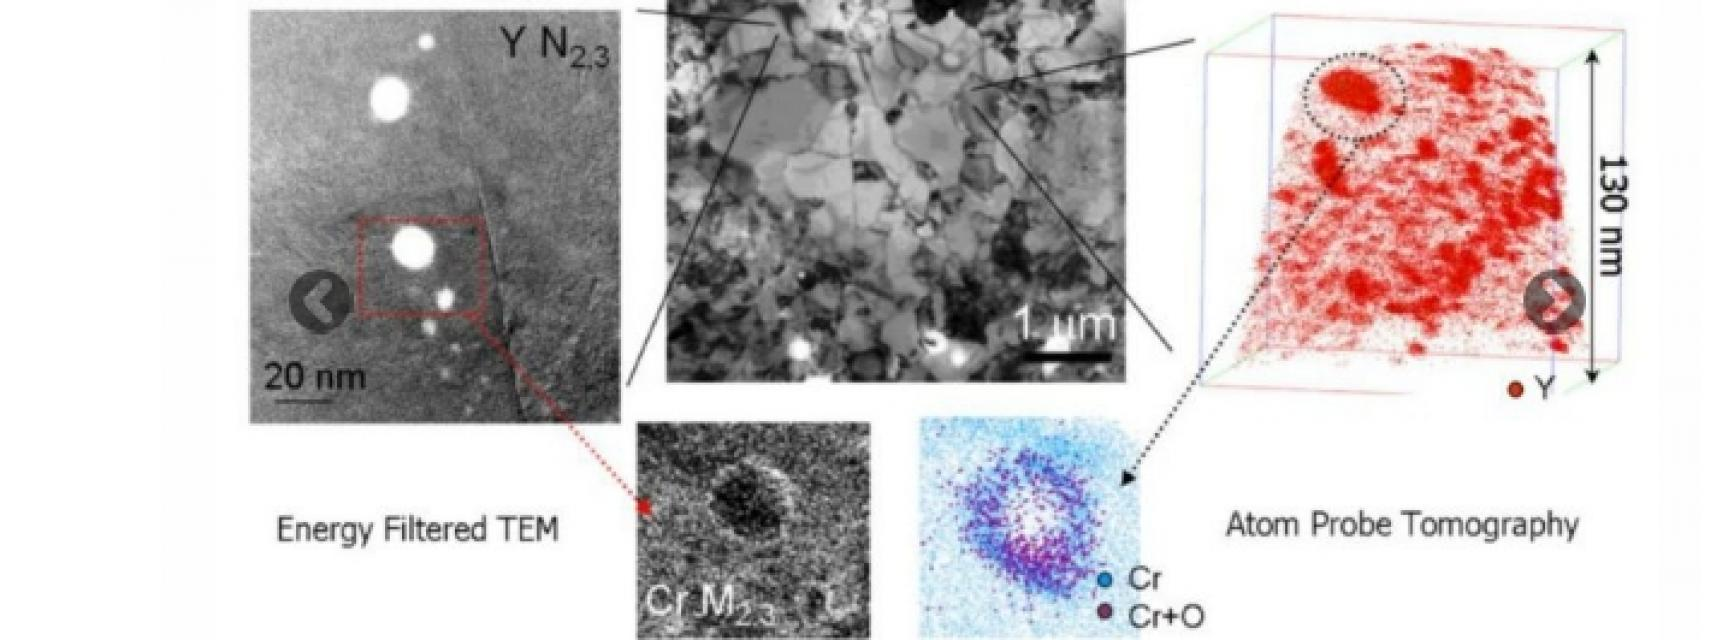 Characterization of nanoscale precipitates